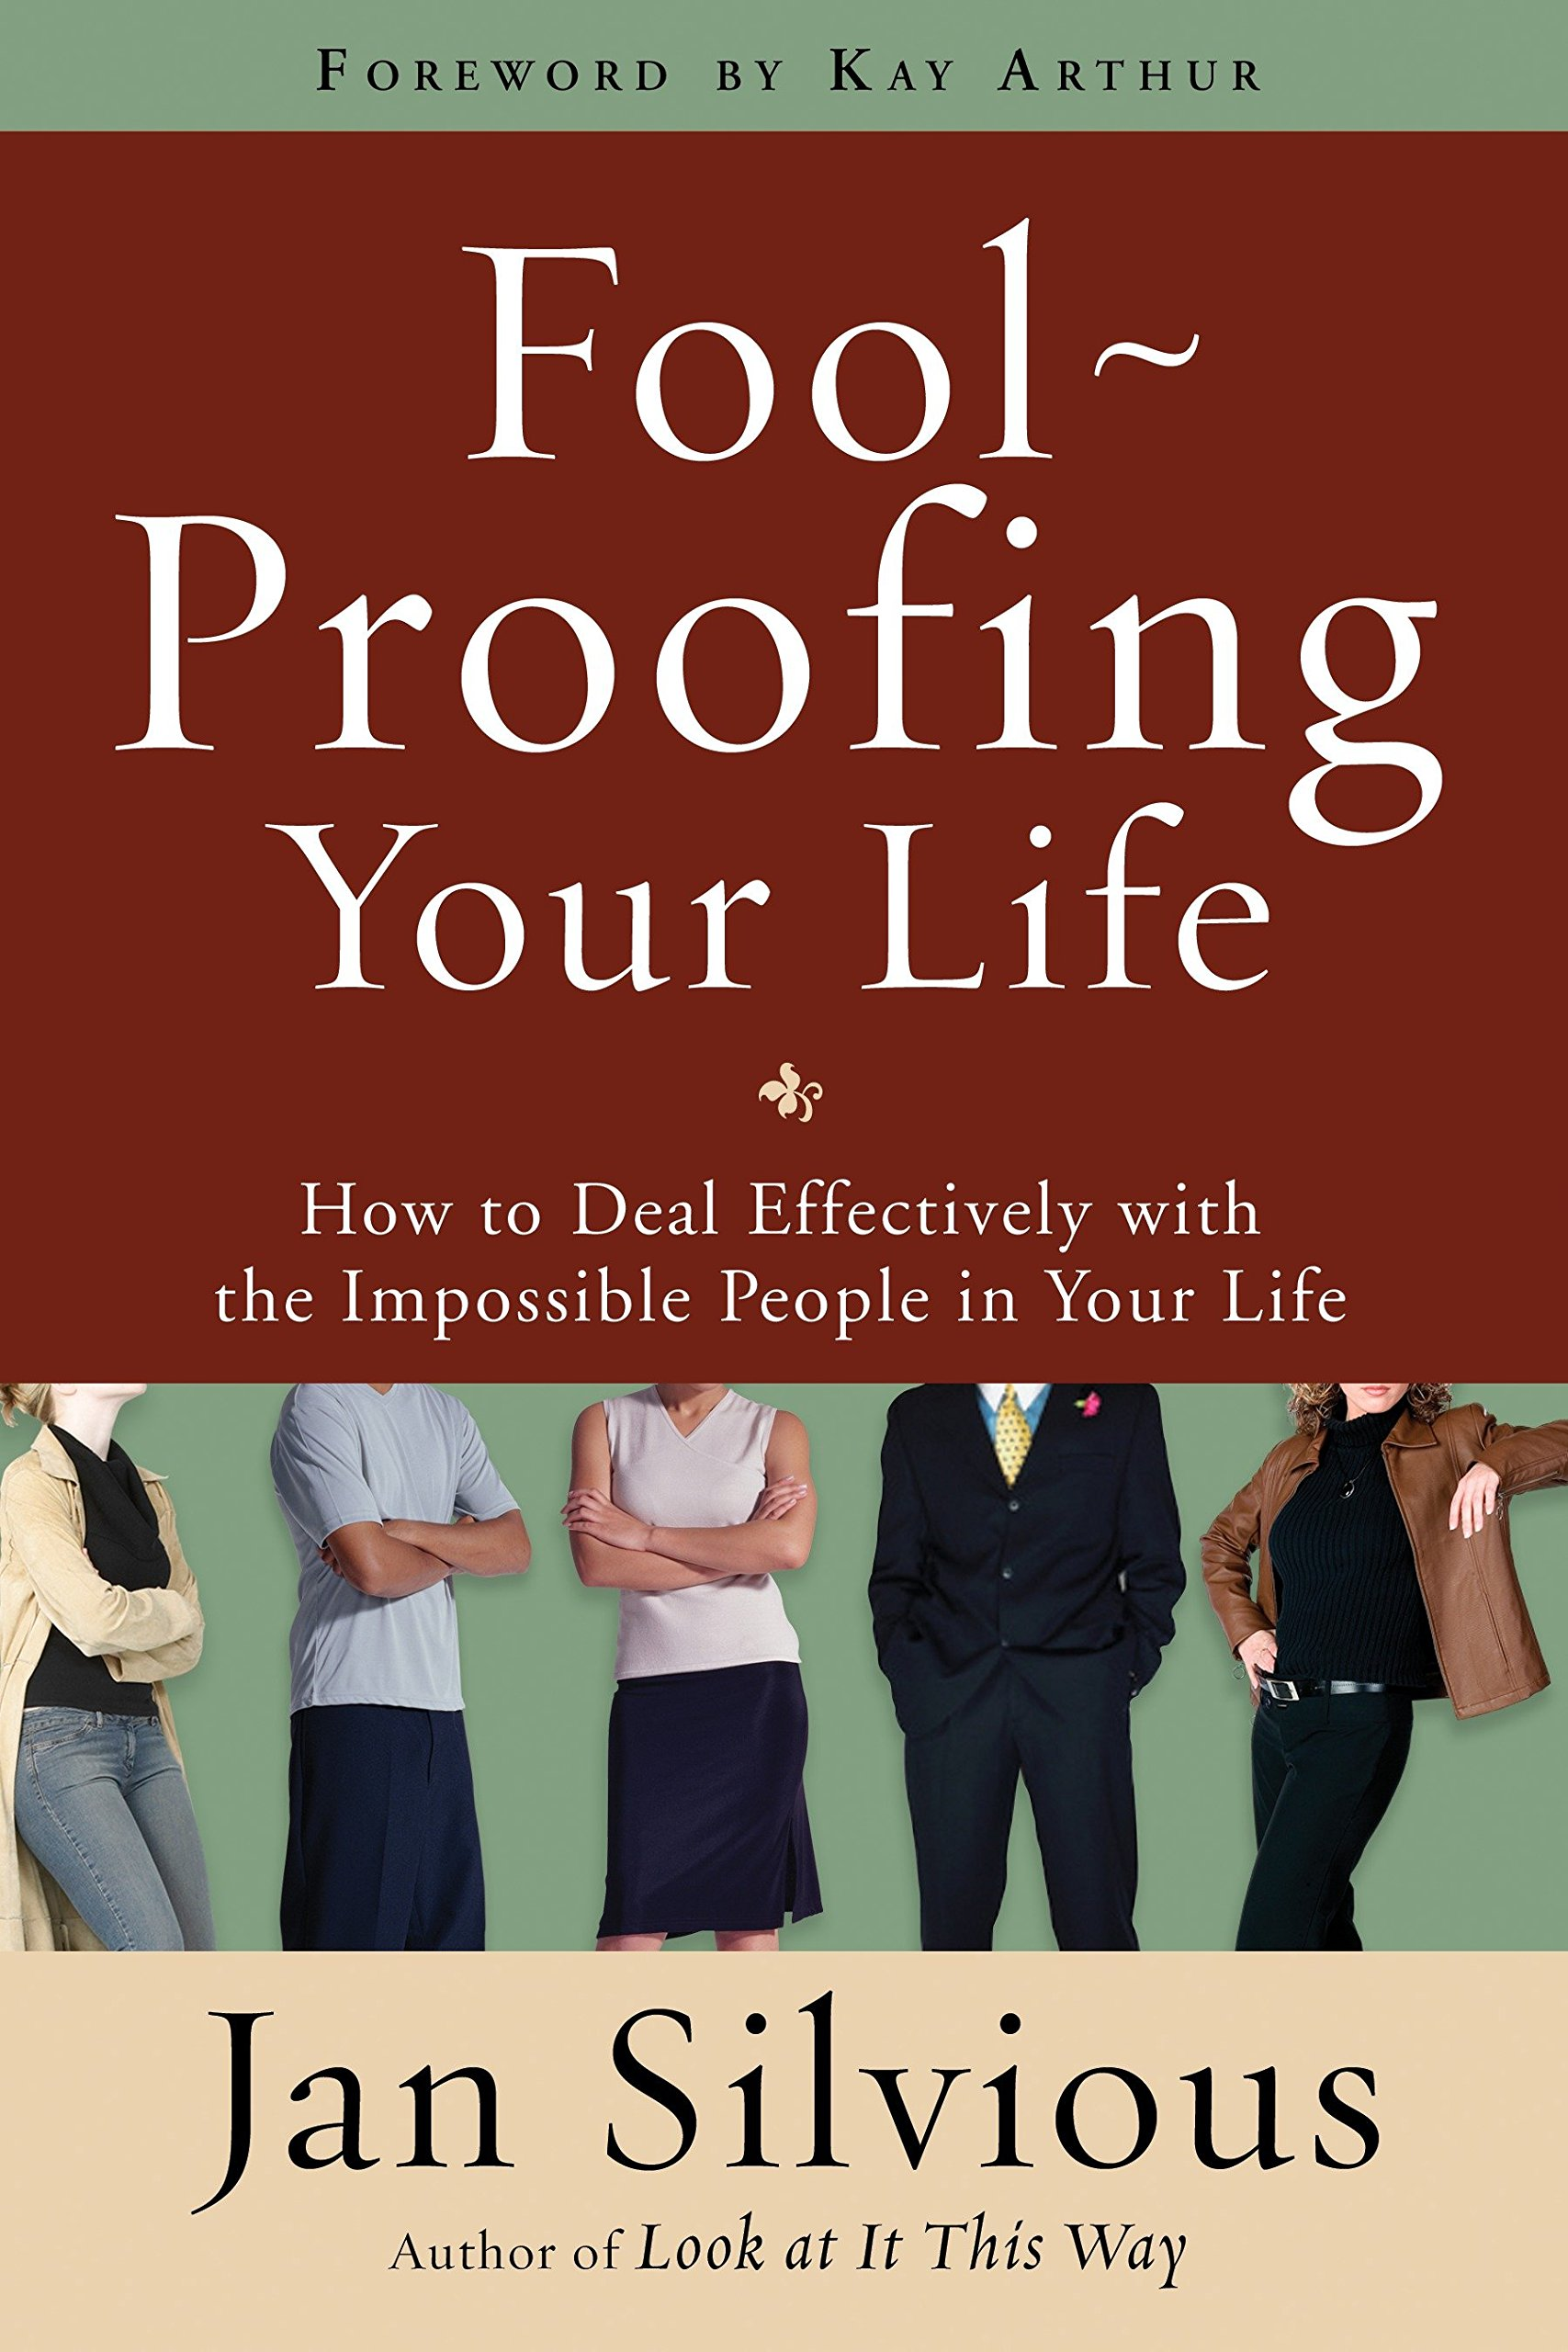 Download Foolproofing Your Life: How to Deal Effectively with the Impossible People in Your Life ebook